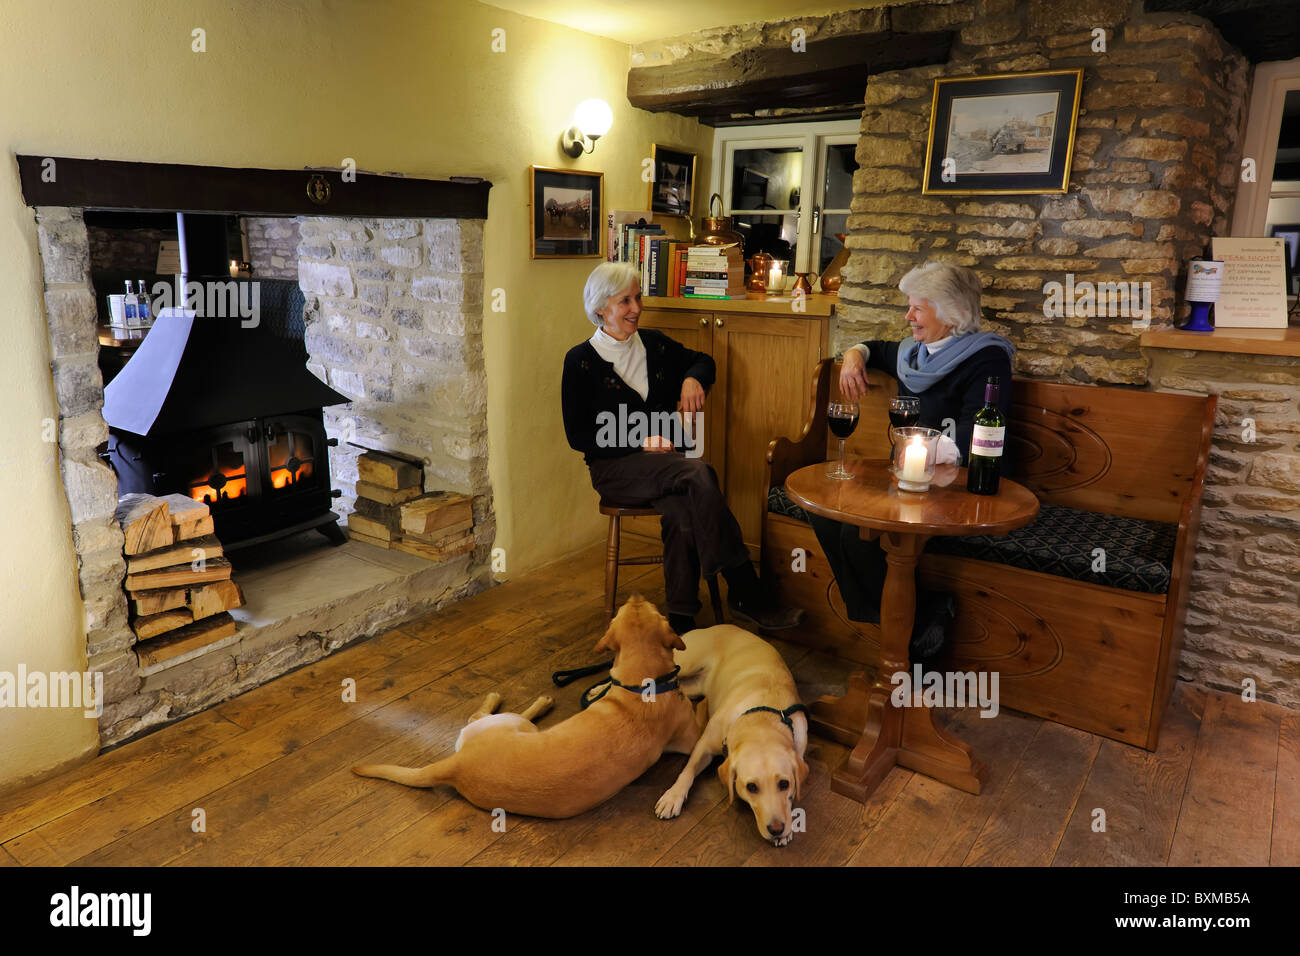 Relaxing at the local - Stock Image